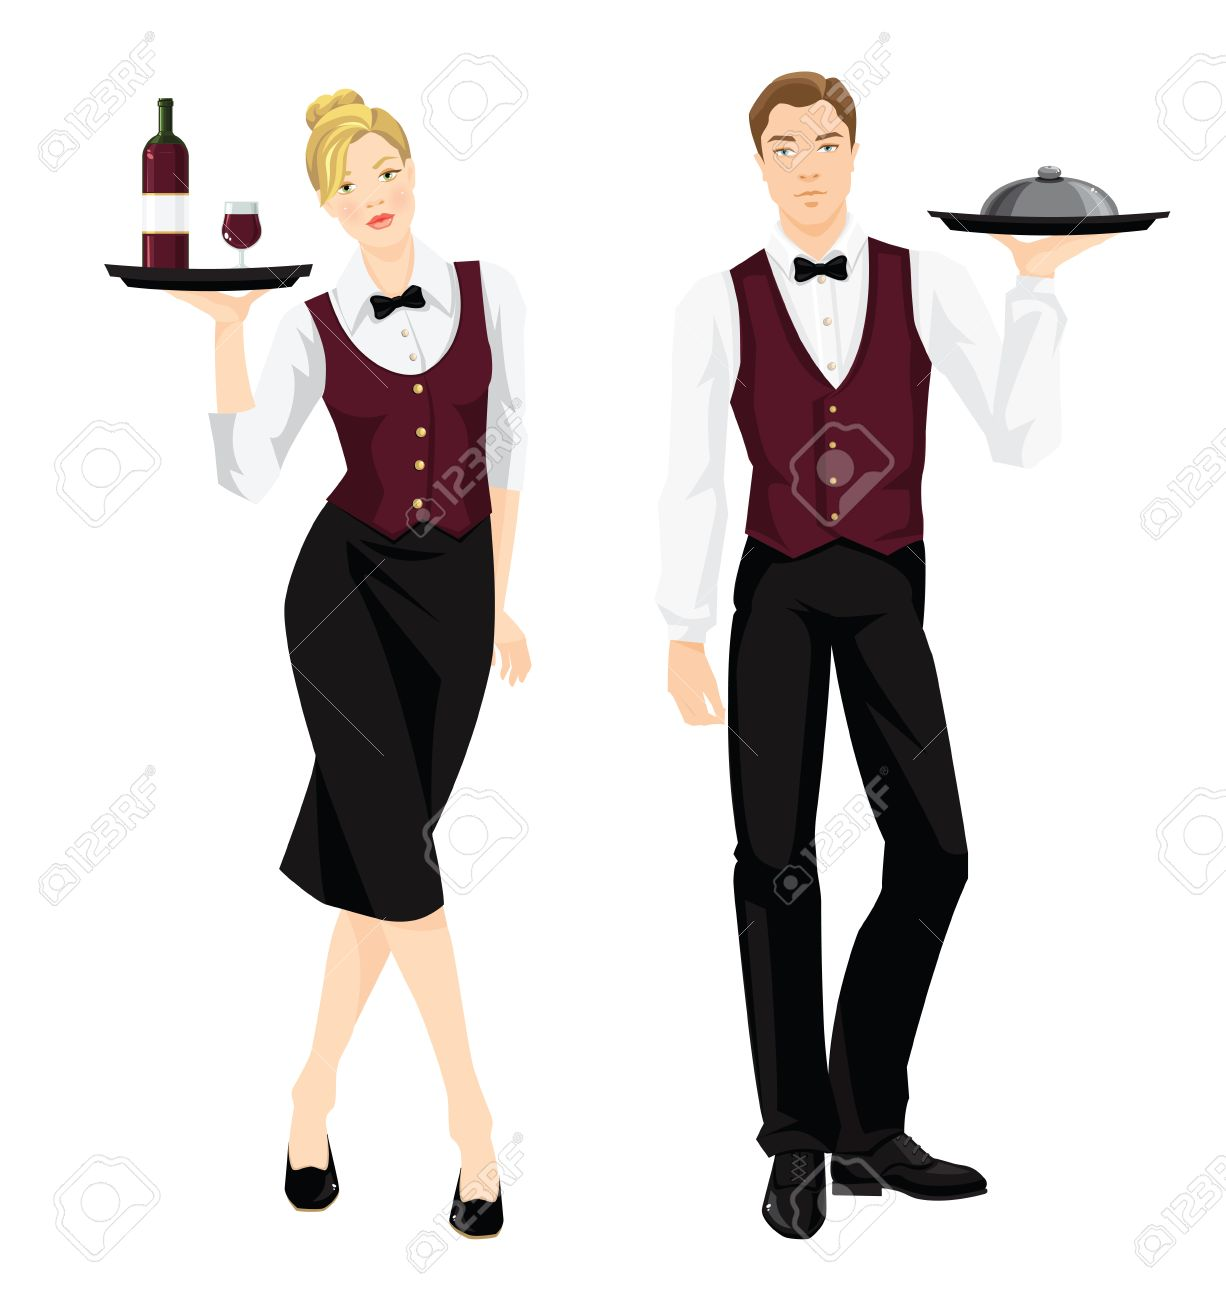 Vector illustration of waiter and waitress in formal clothes isolated on white background. - 56479312